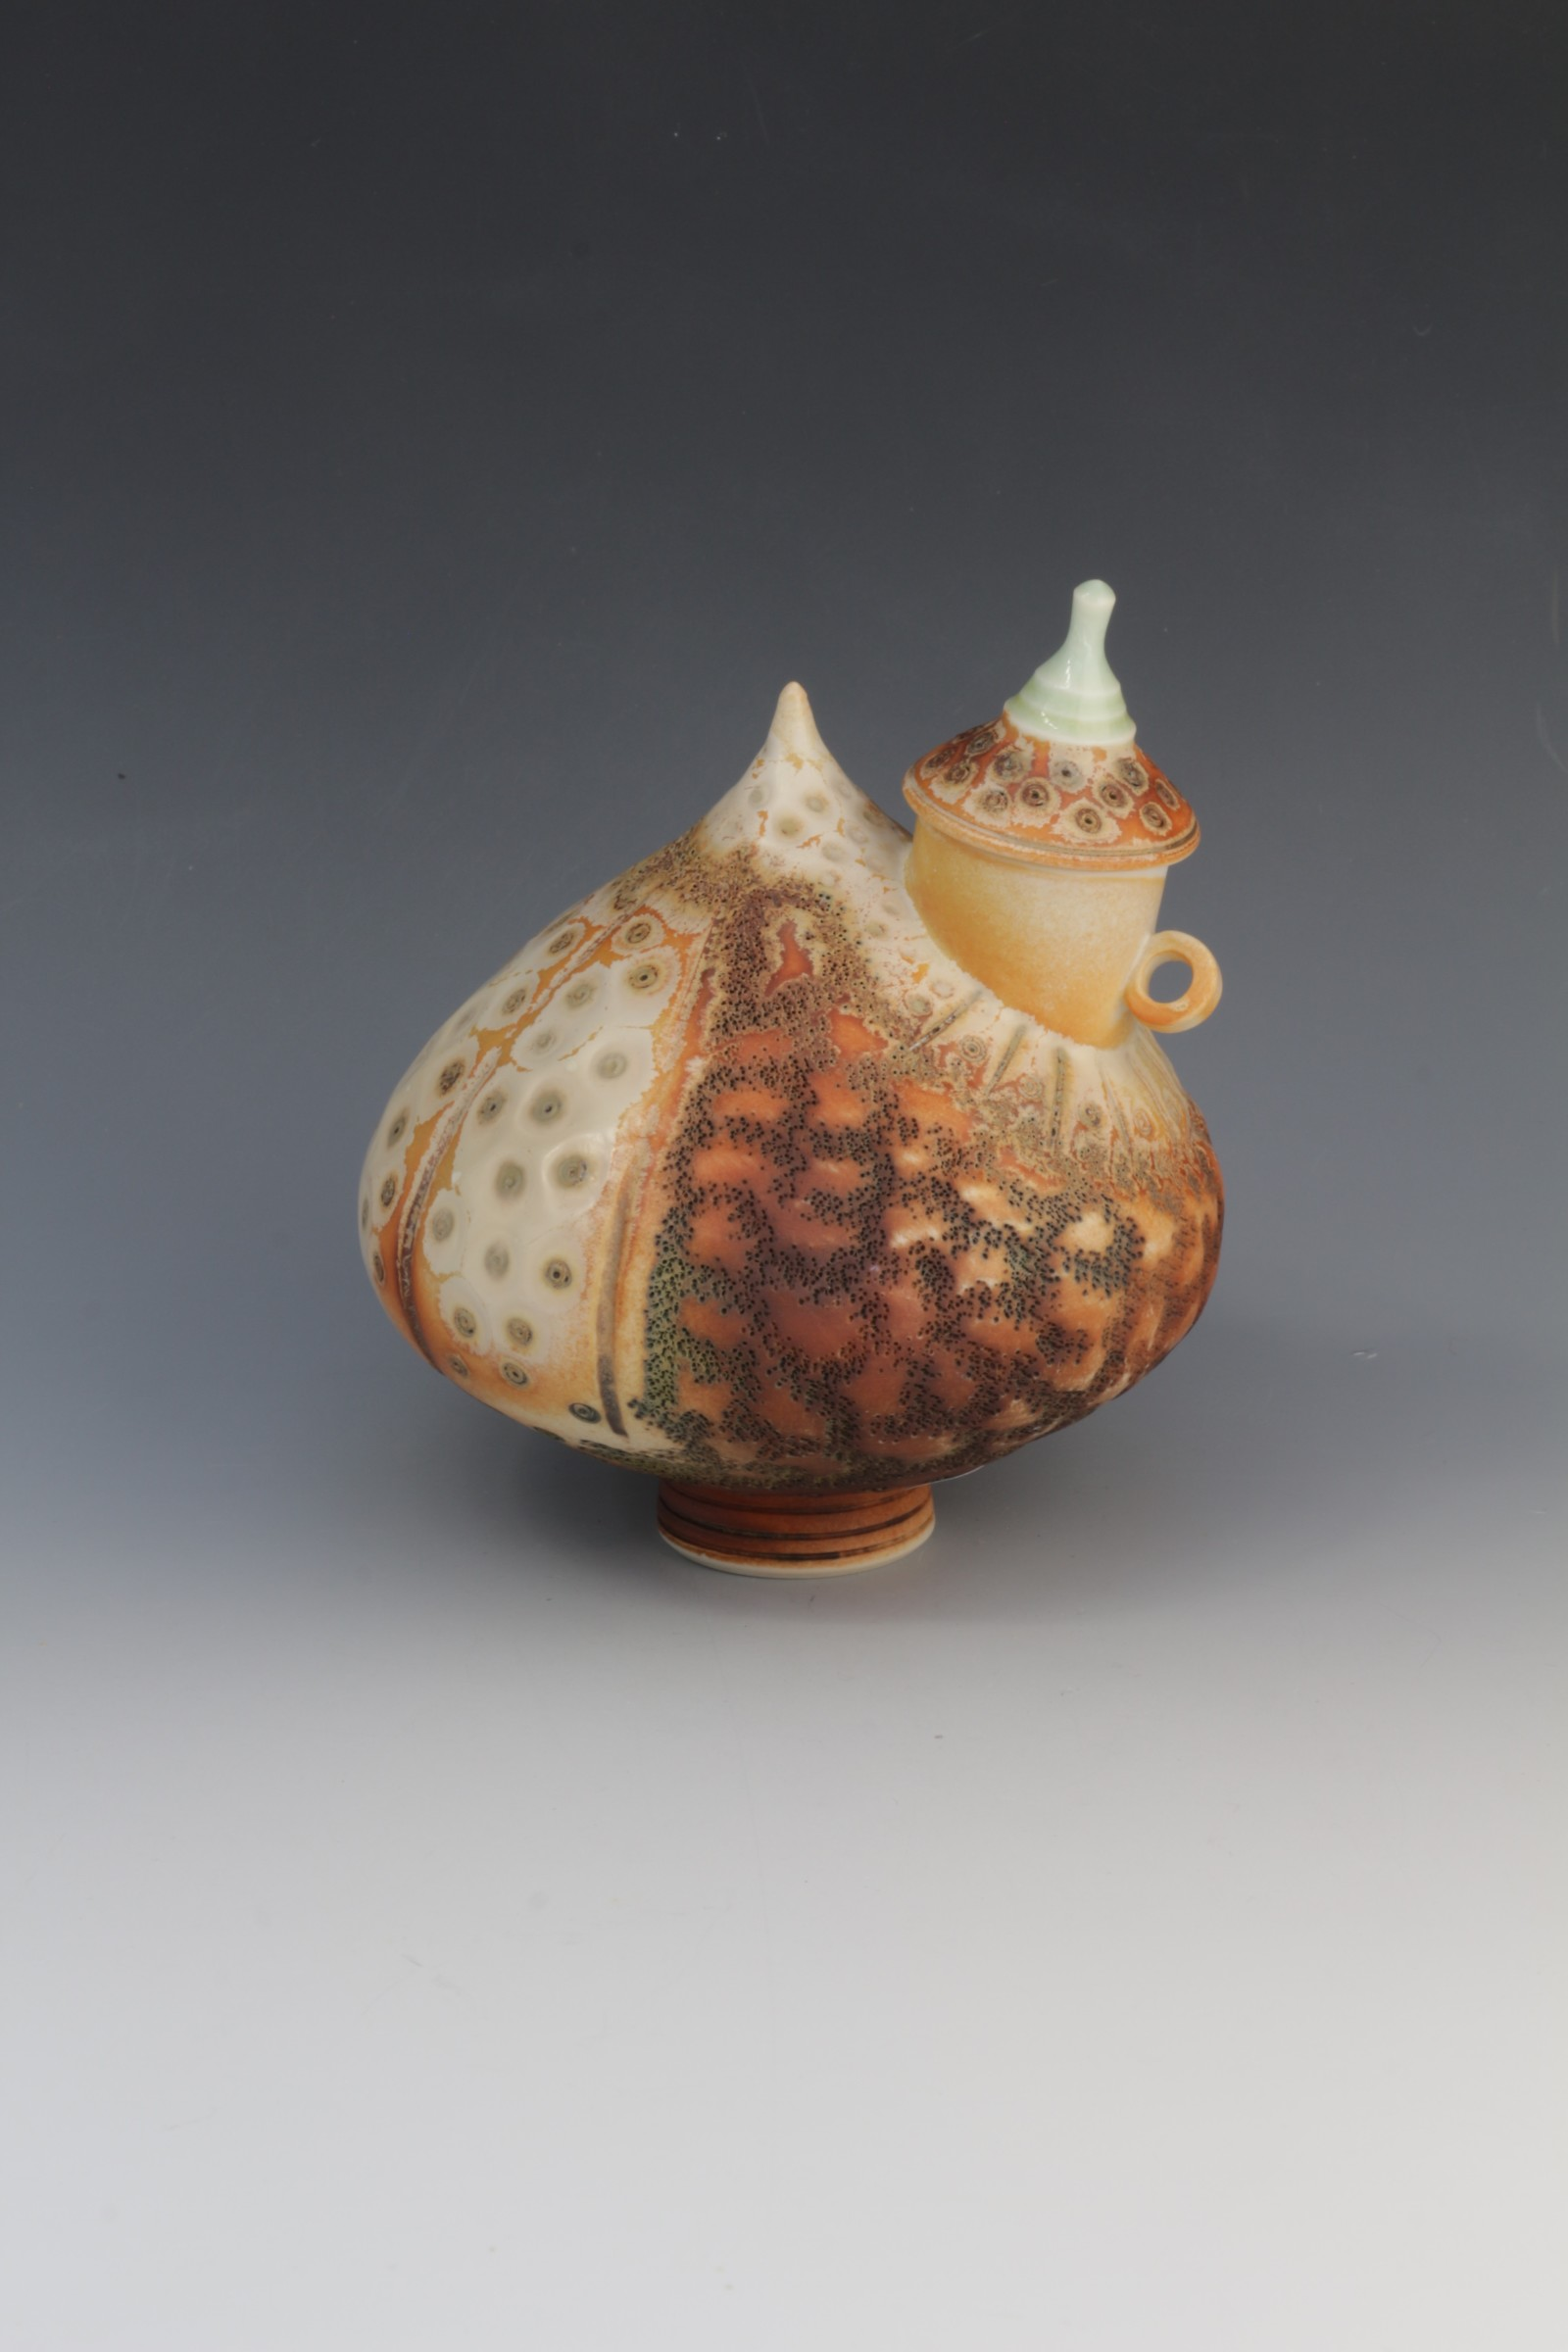 "<span class=""link fancybox-details-link""><a href=""/artists/61-geoffrey-swindell/works/6412-geoffrey-swindell-lidded-pot/"">View Detail Page</a></span><div class=""artist""><strong>Geoffrey Swindell</strong></div> <div class=""title""><em>Lidded Pot</em></div> <div class=""copyright_line"">Copyright The Artist</div>"